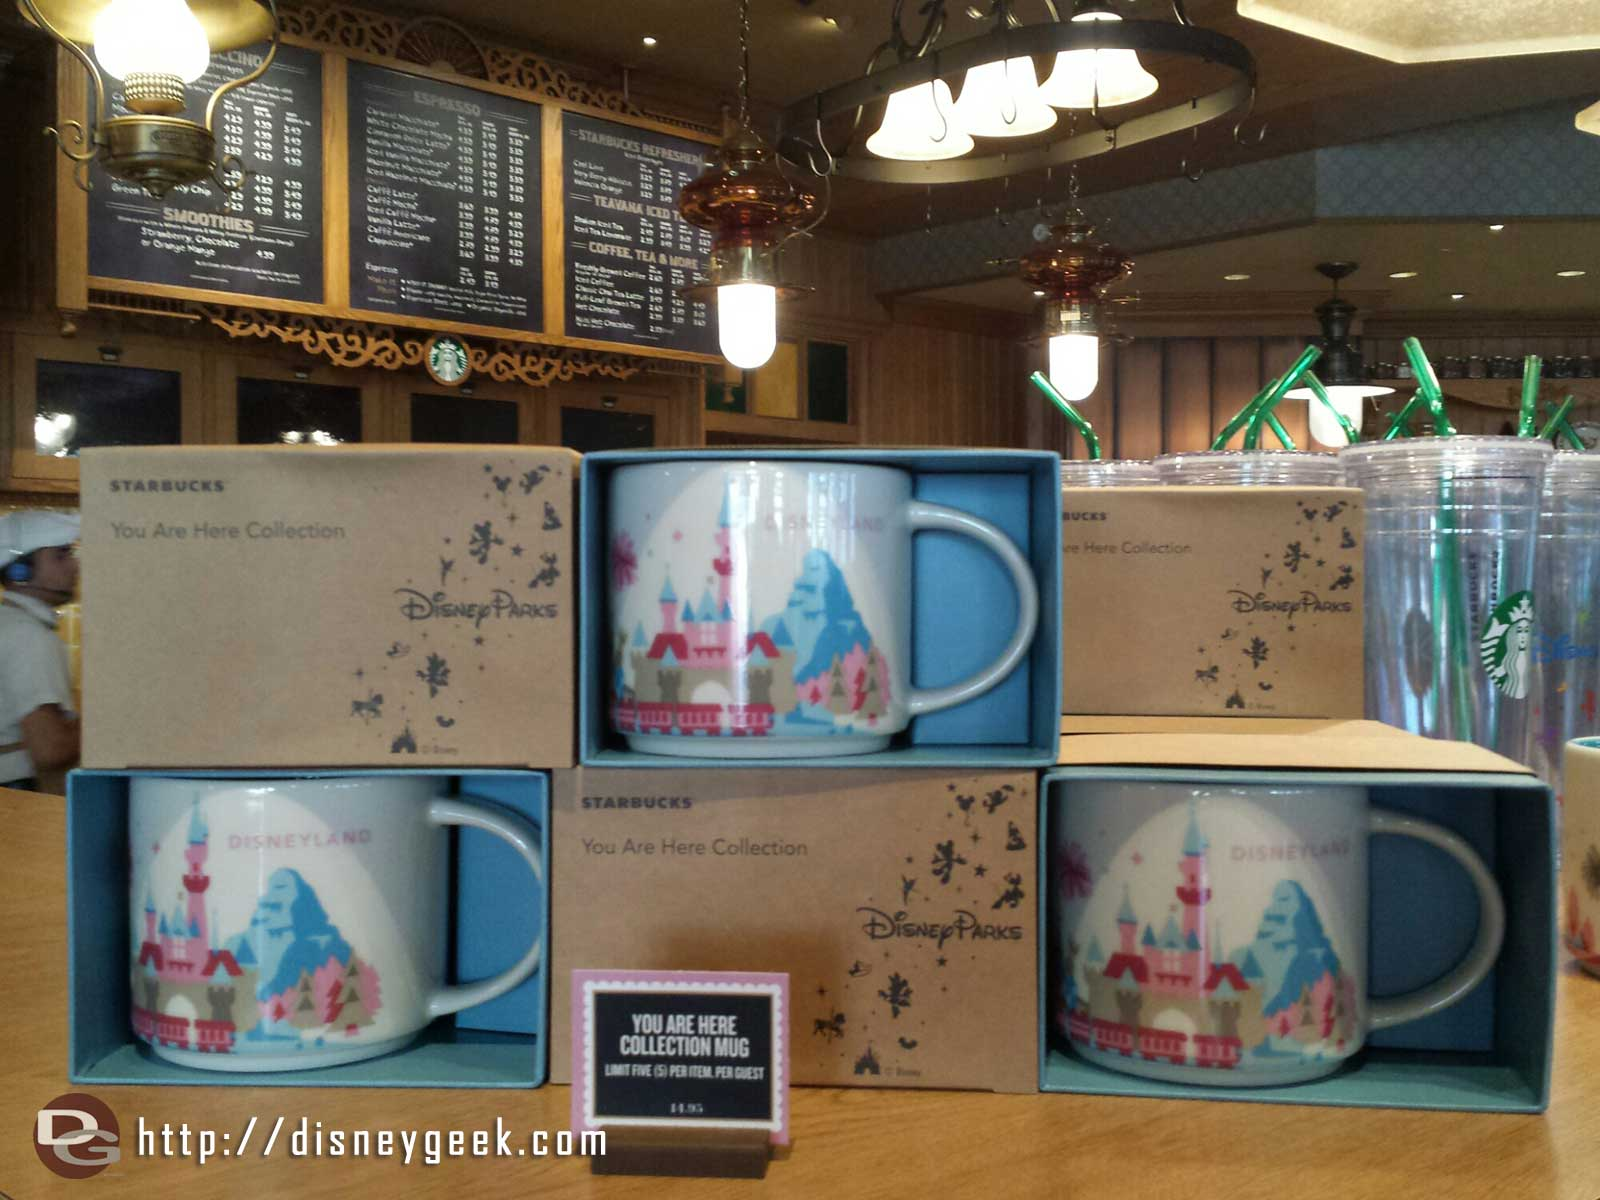 #Disneyland you are here collection mugs at the Market House